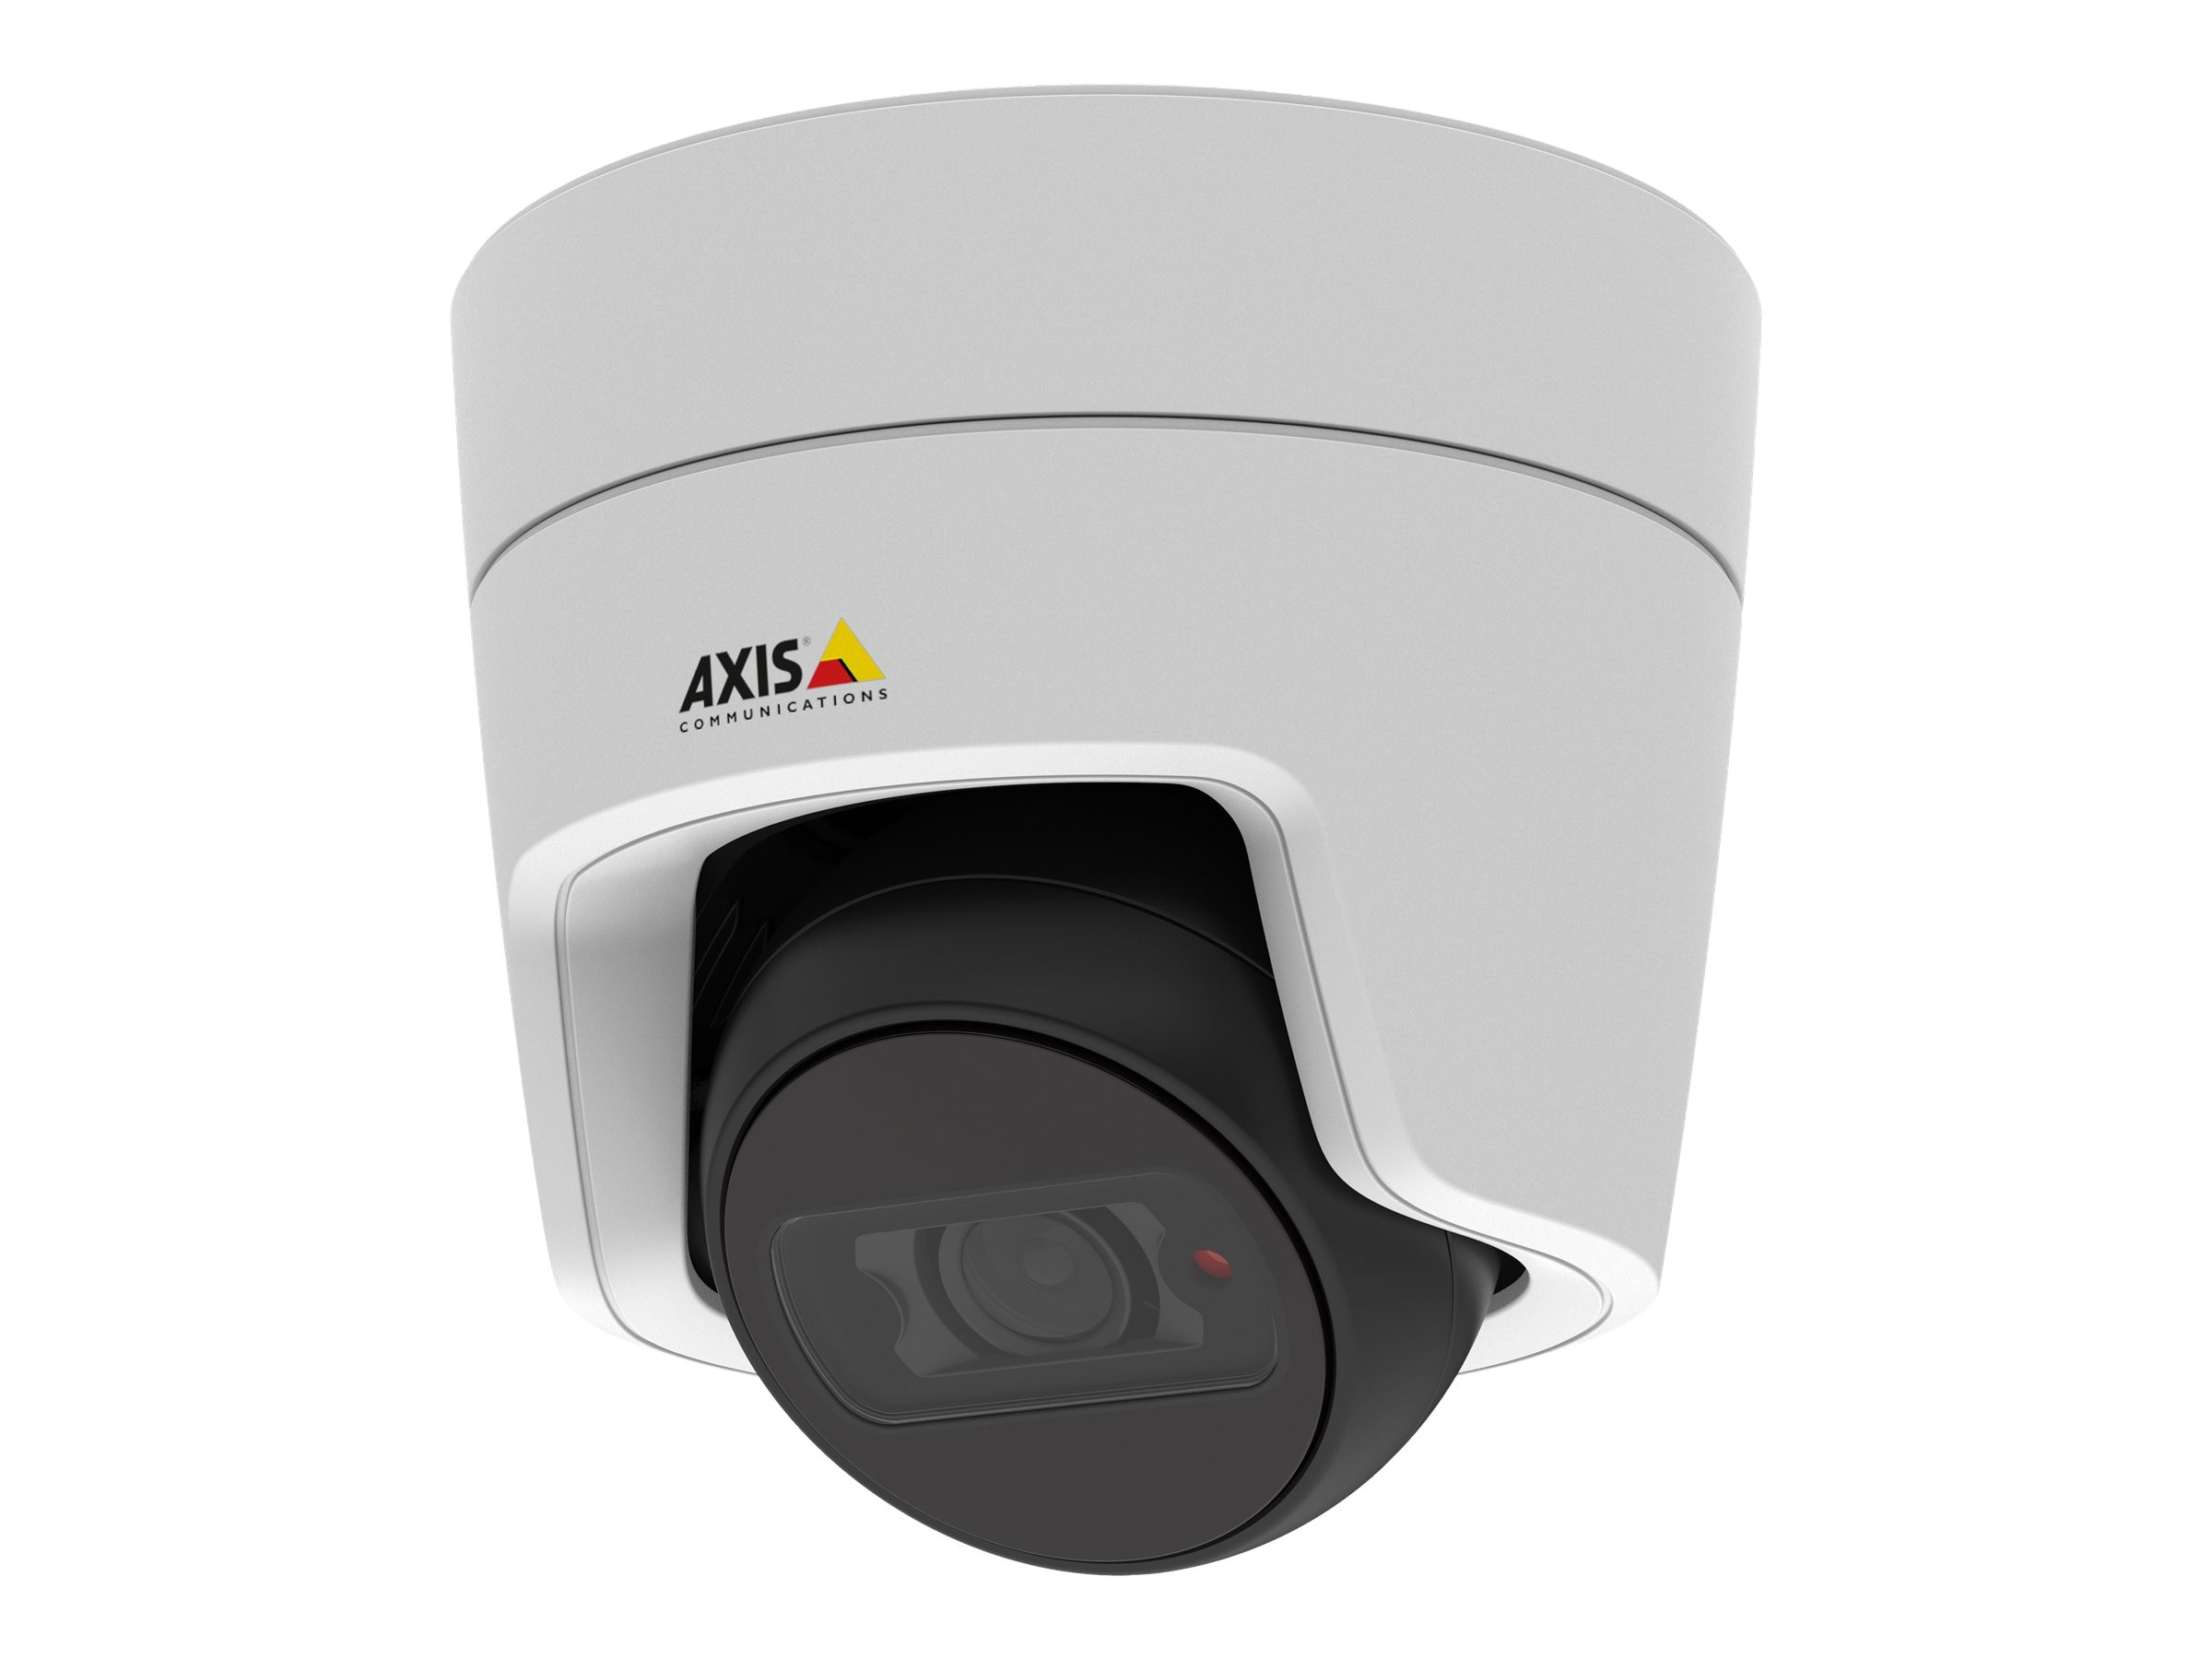 Axis M3105-L 1080p Day Night Dome Network Camera